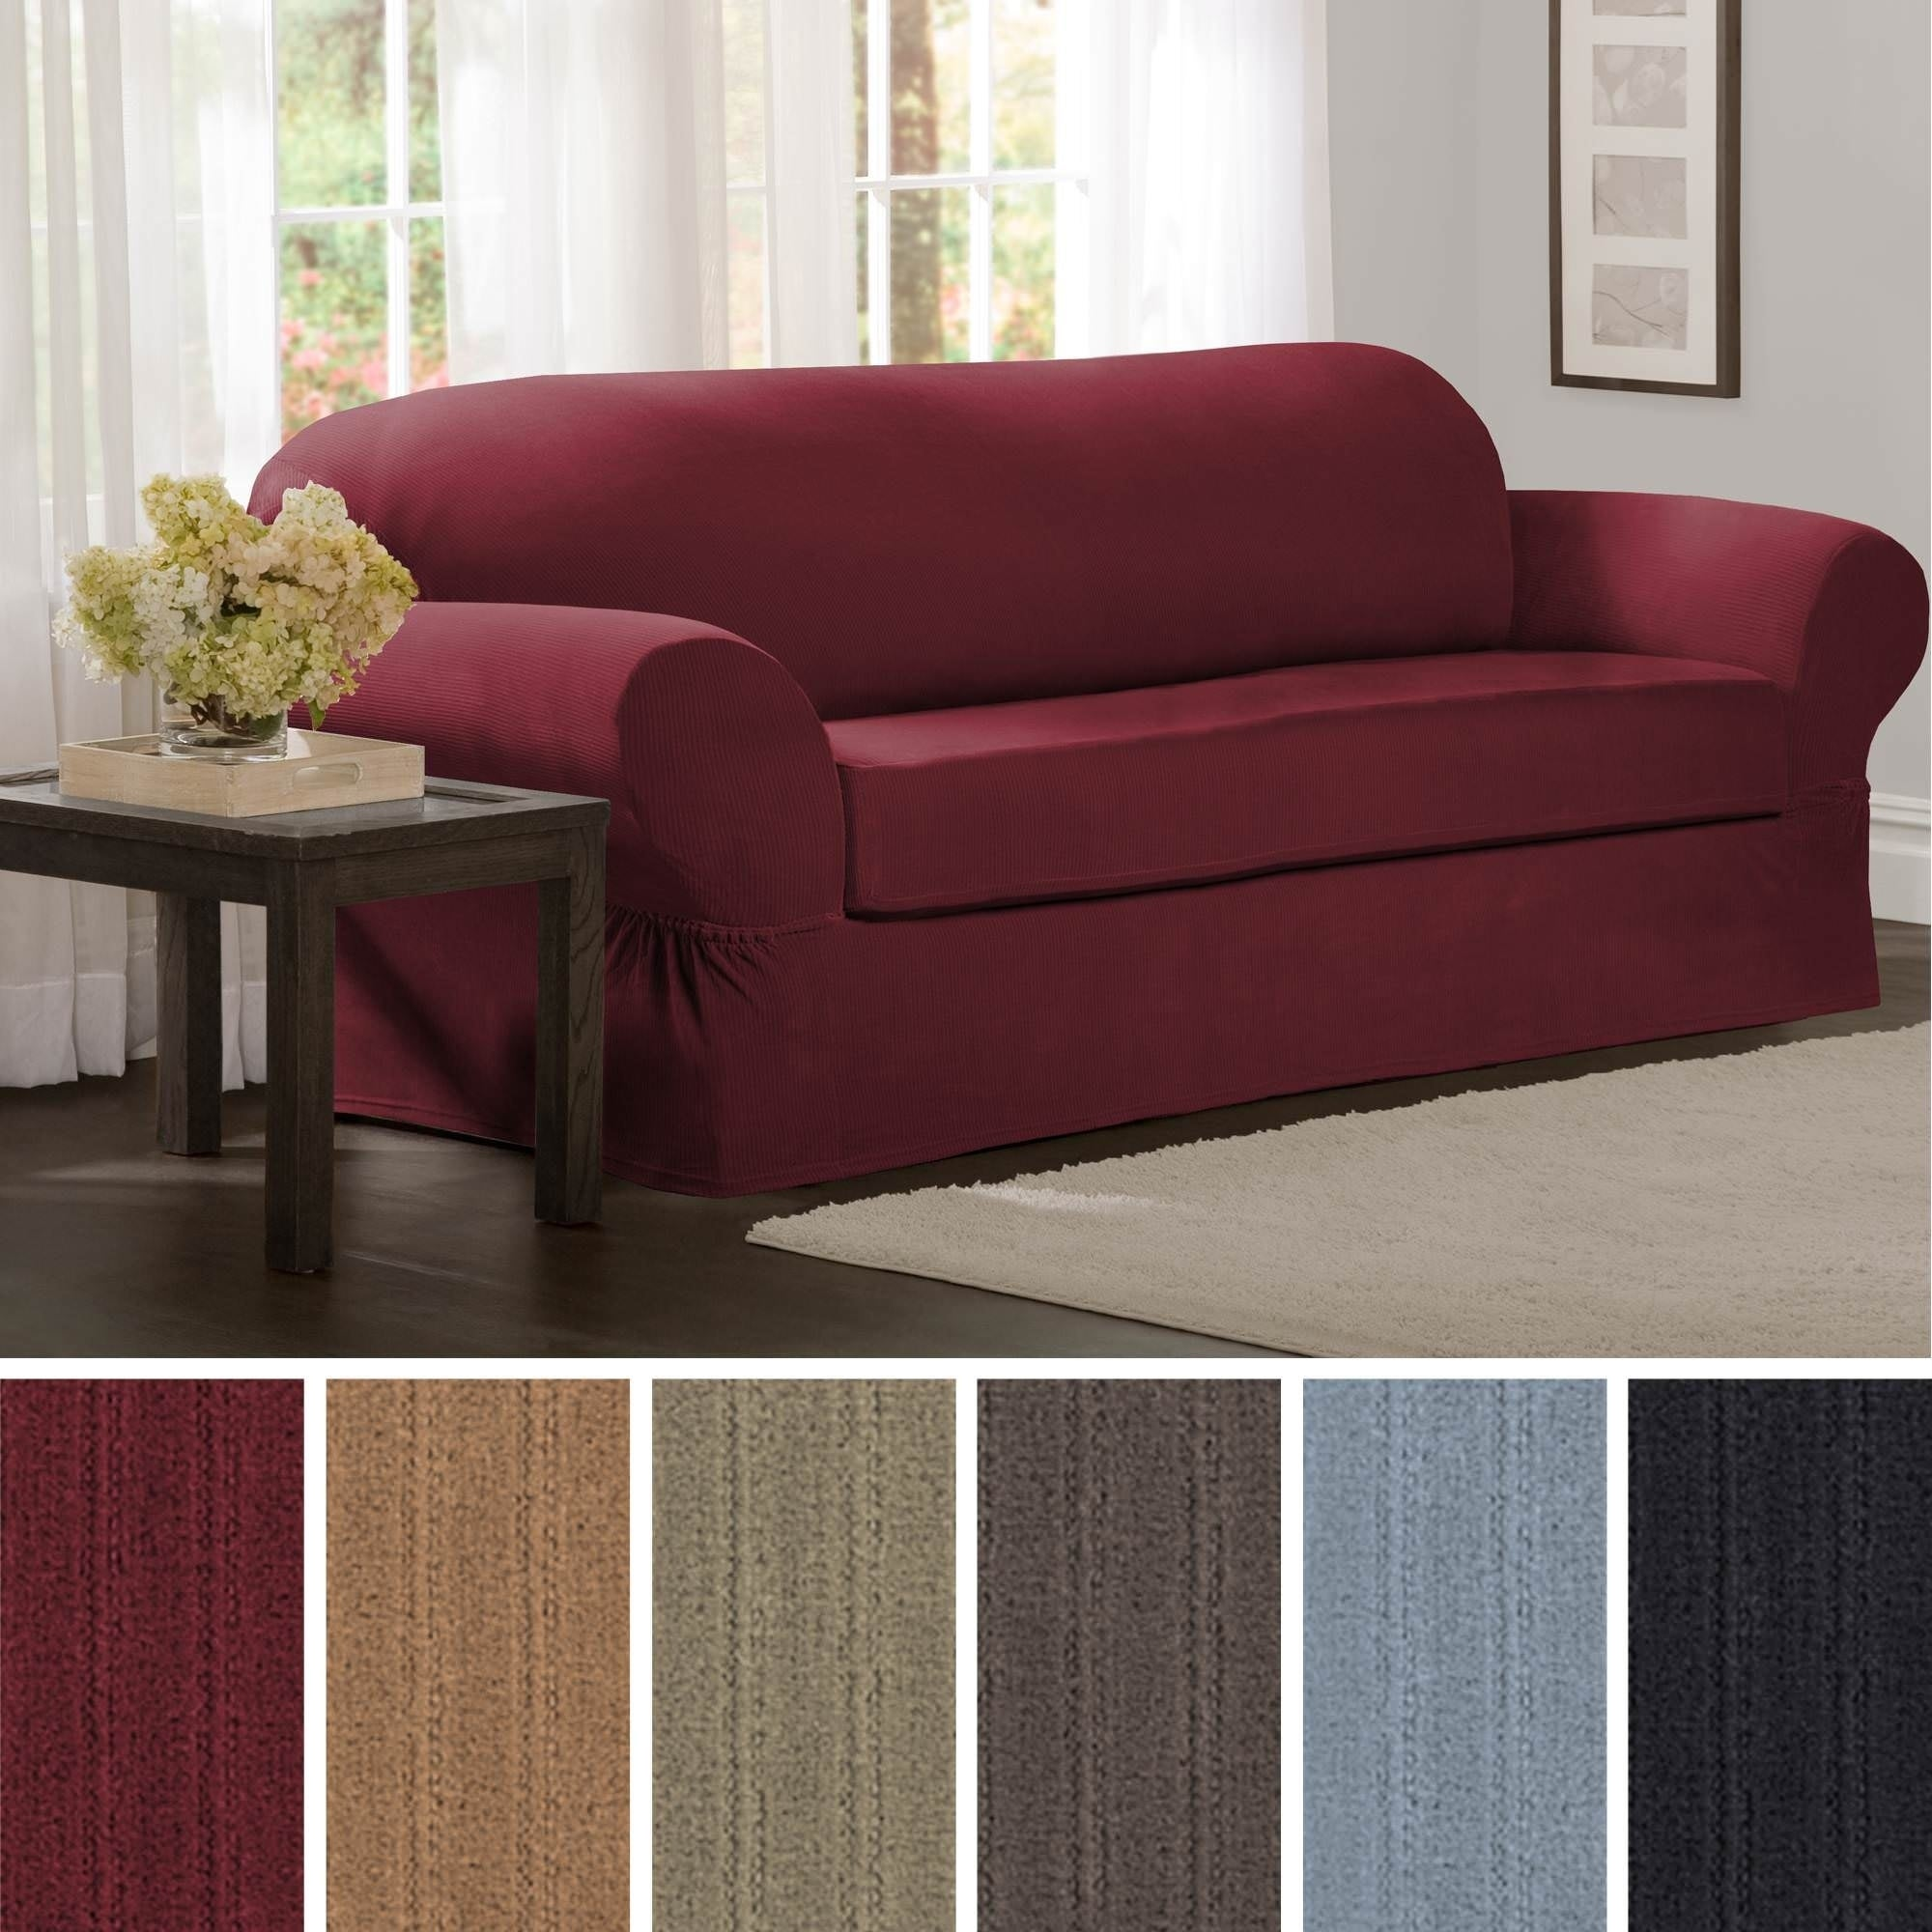 Shop Maytex Collin 2-Piece Sofa Slipcover - 74-96\